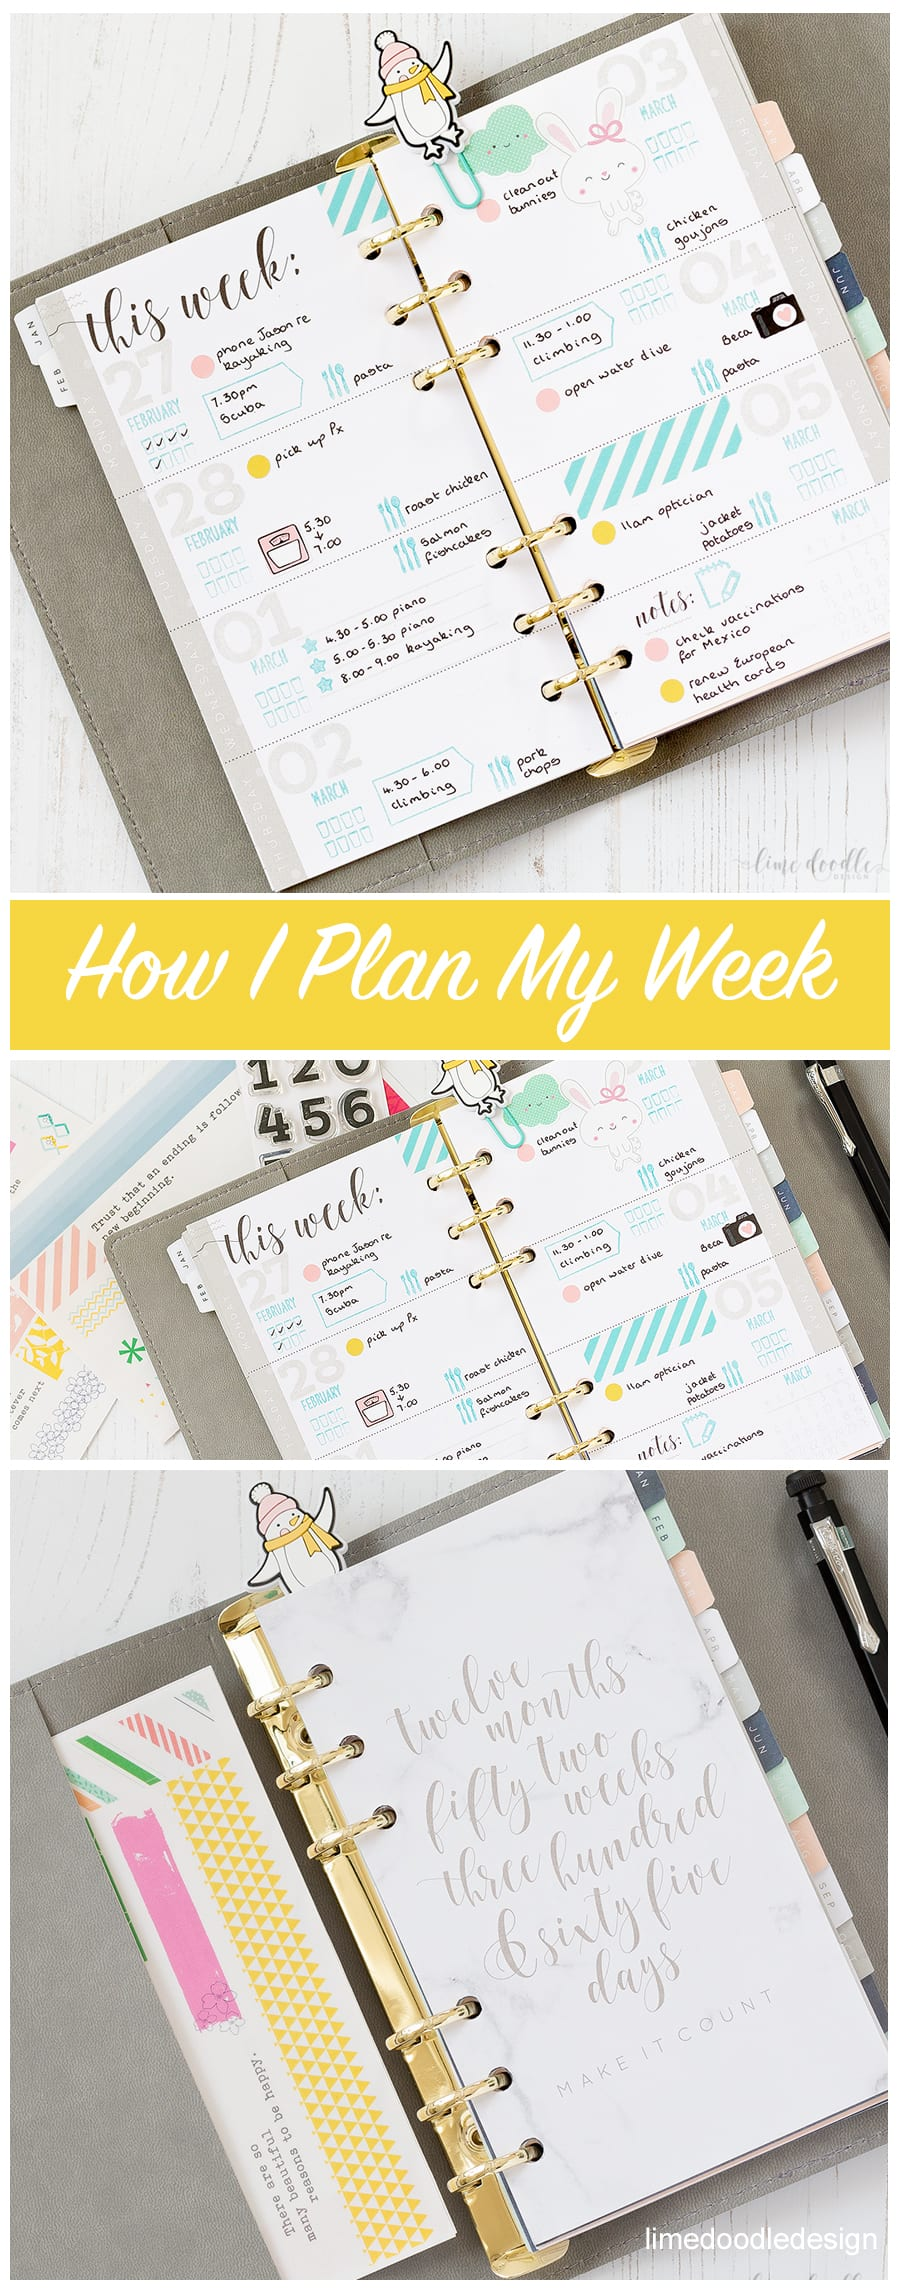 How I plan my week in a Kaisercraft planner by Debby Hughes. Find out more by clicking on the following link: http://limedoodledesign.com/2017/03/video-how-i-plan-out-my-week/